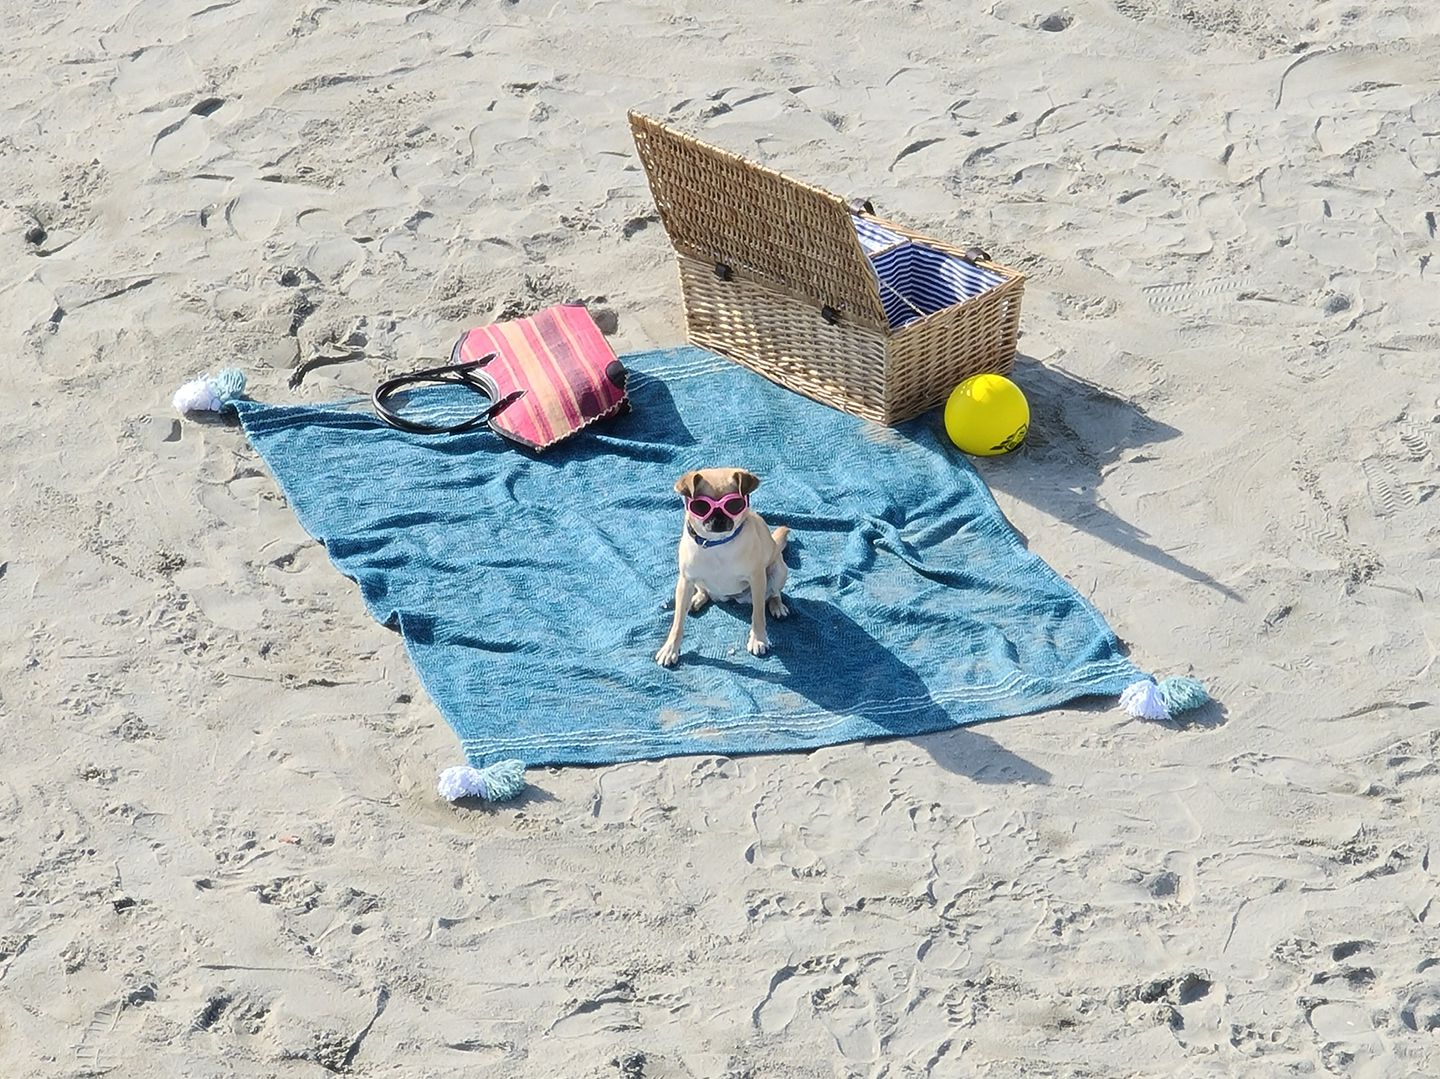 Photo taken on Galaxy S20 Ultra of a beach with many people. As we zoom in on the photo, we see a funny moment of a dog sitting on a beach towel with pink goggles on, showing how Space Zoom lets you find moments you might have otherwise missed